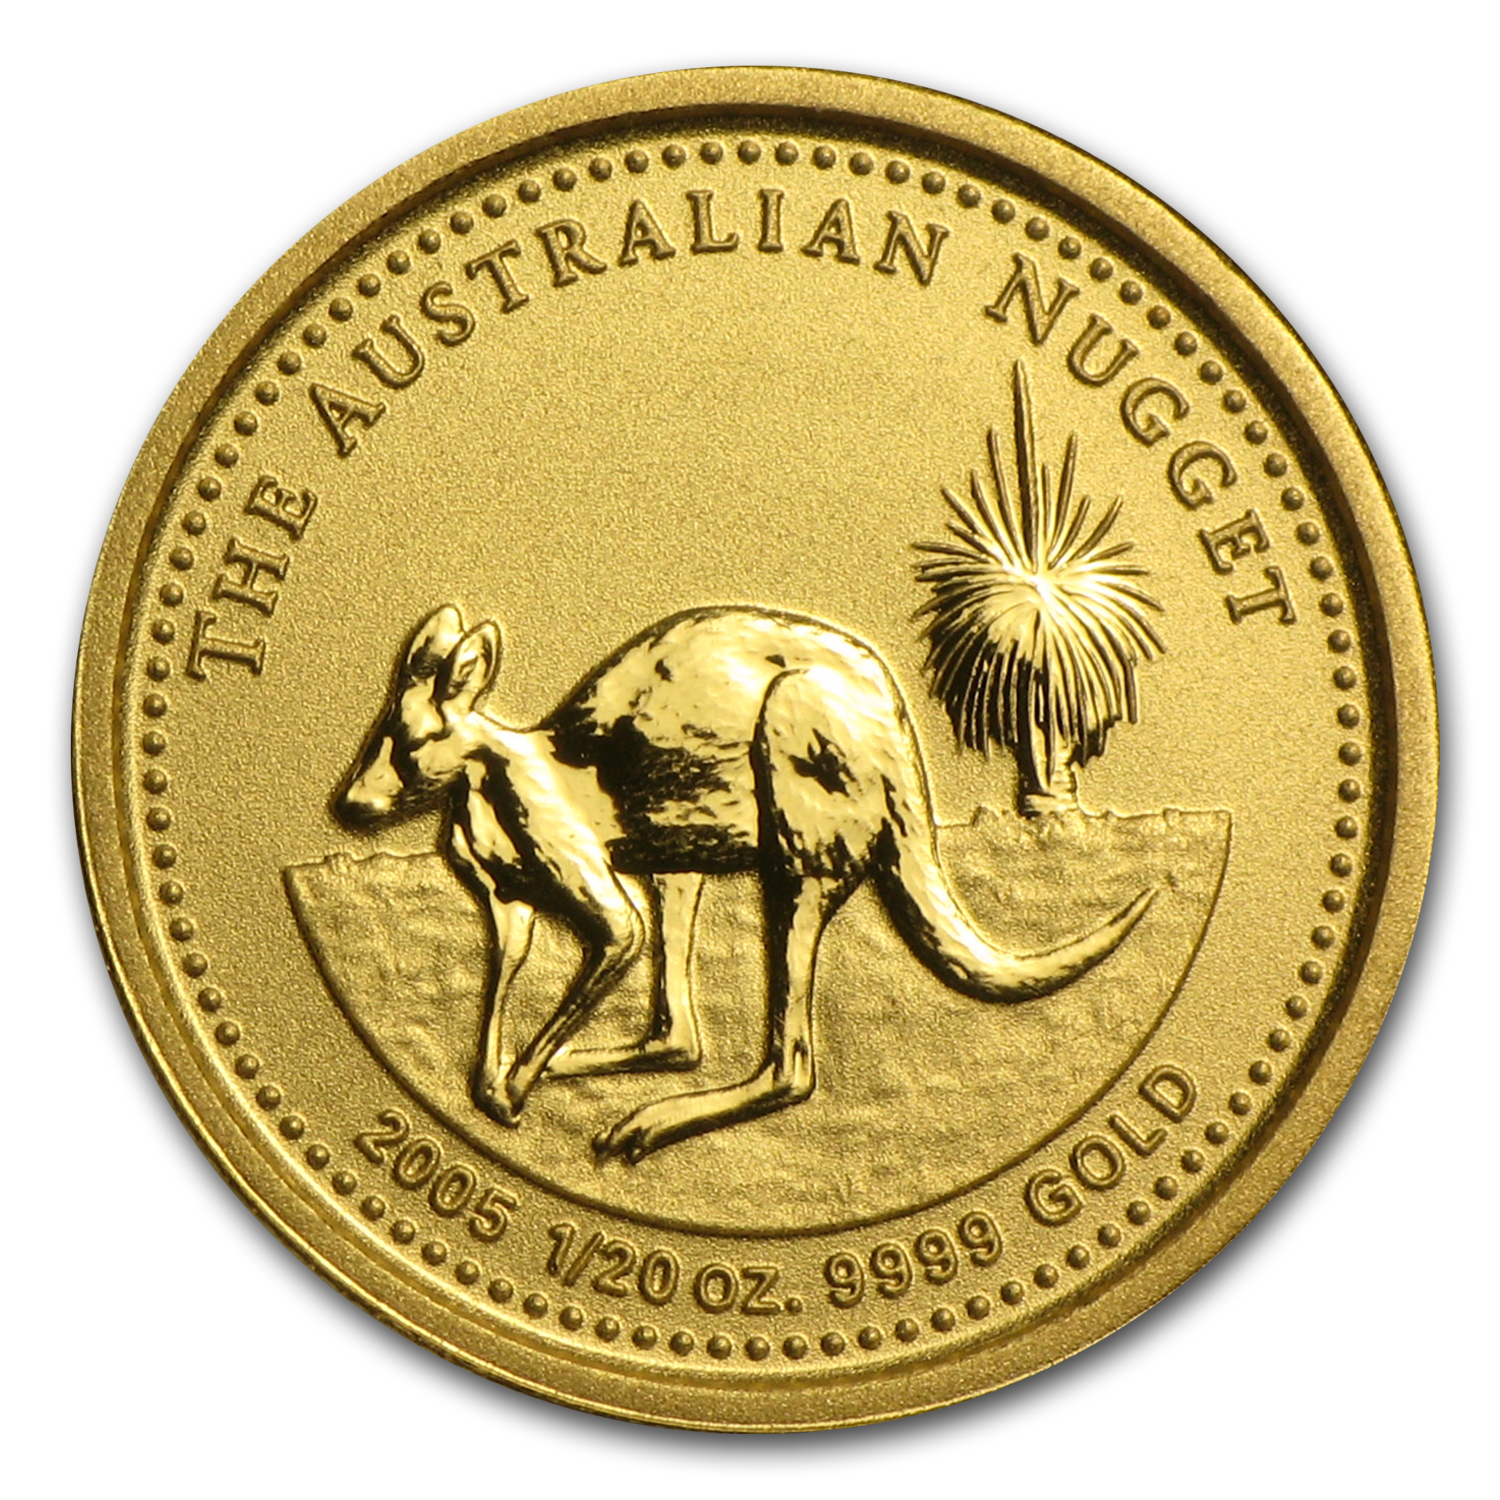 2005 Australia 1/20 oz Gold Nugget